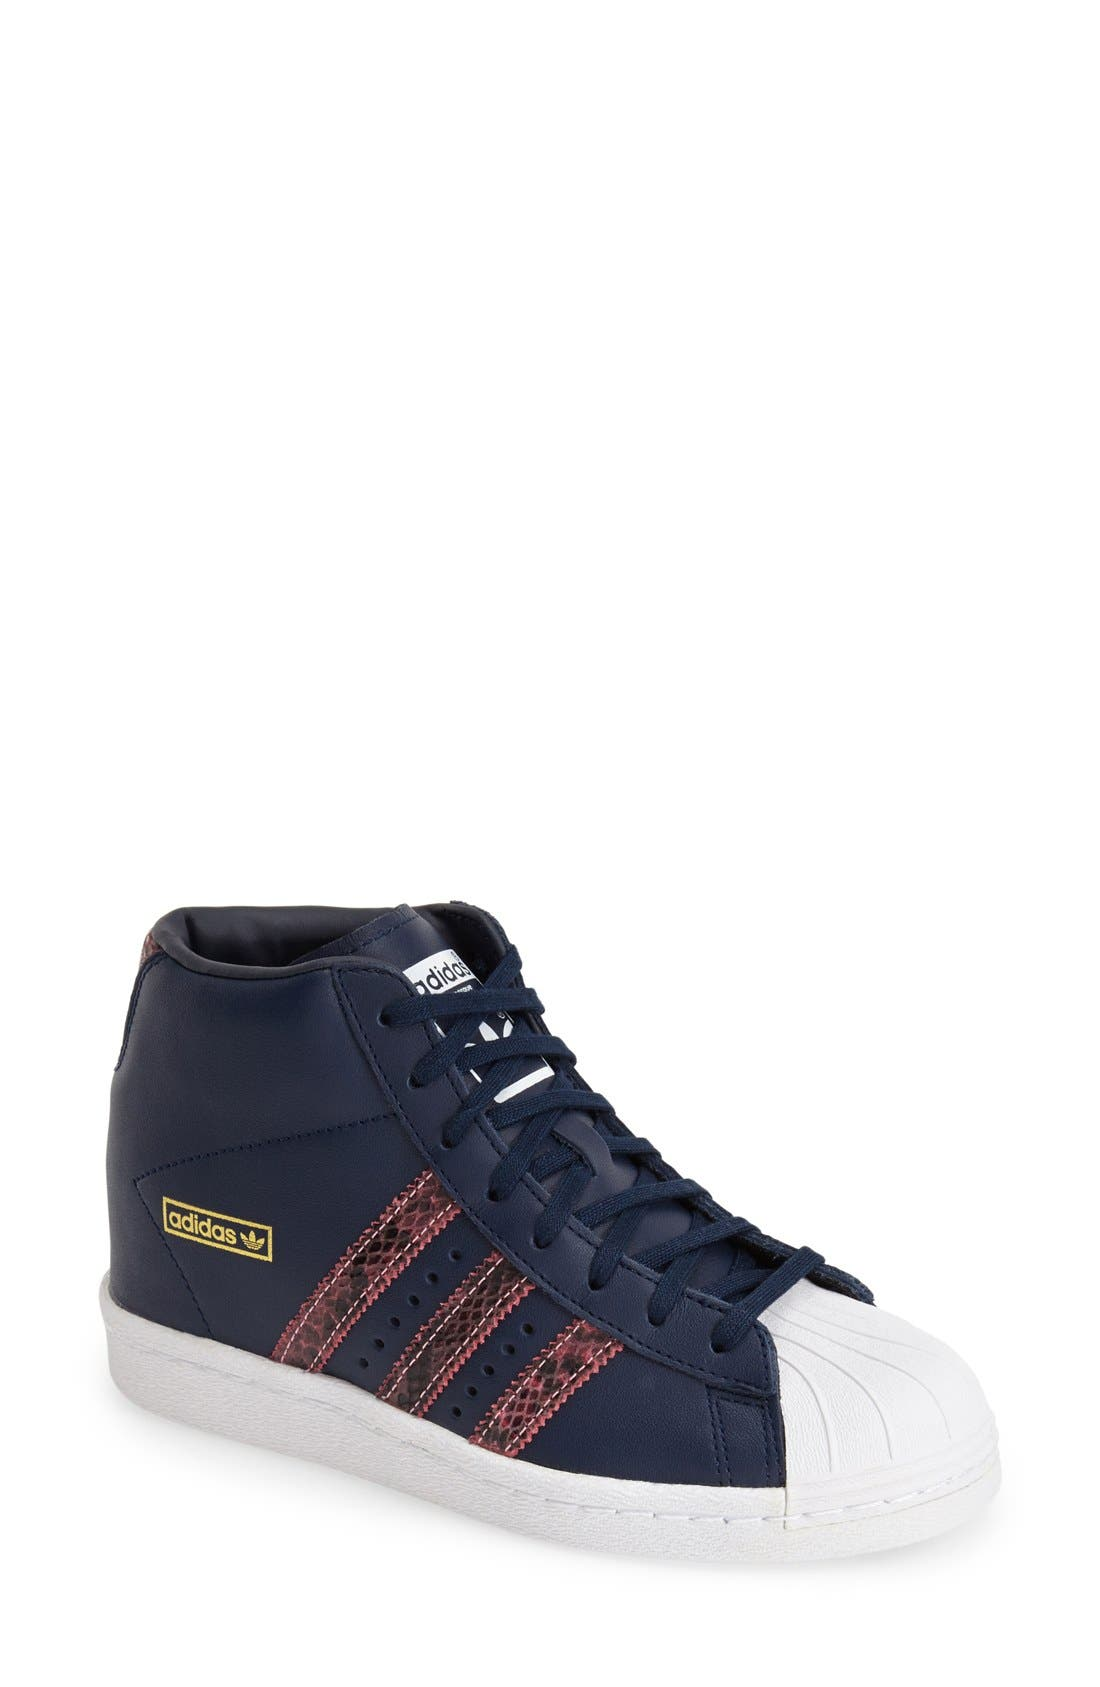 Main Image - adidas 'Superstar Up' Hidden Wedge Leather Sneaker (Women)